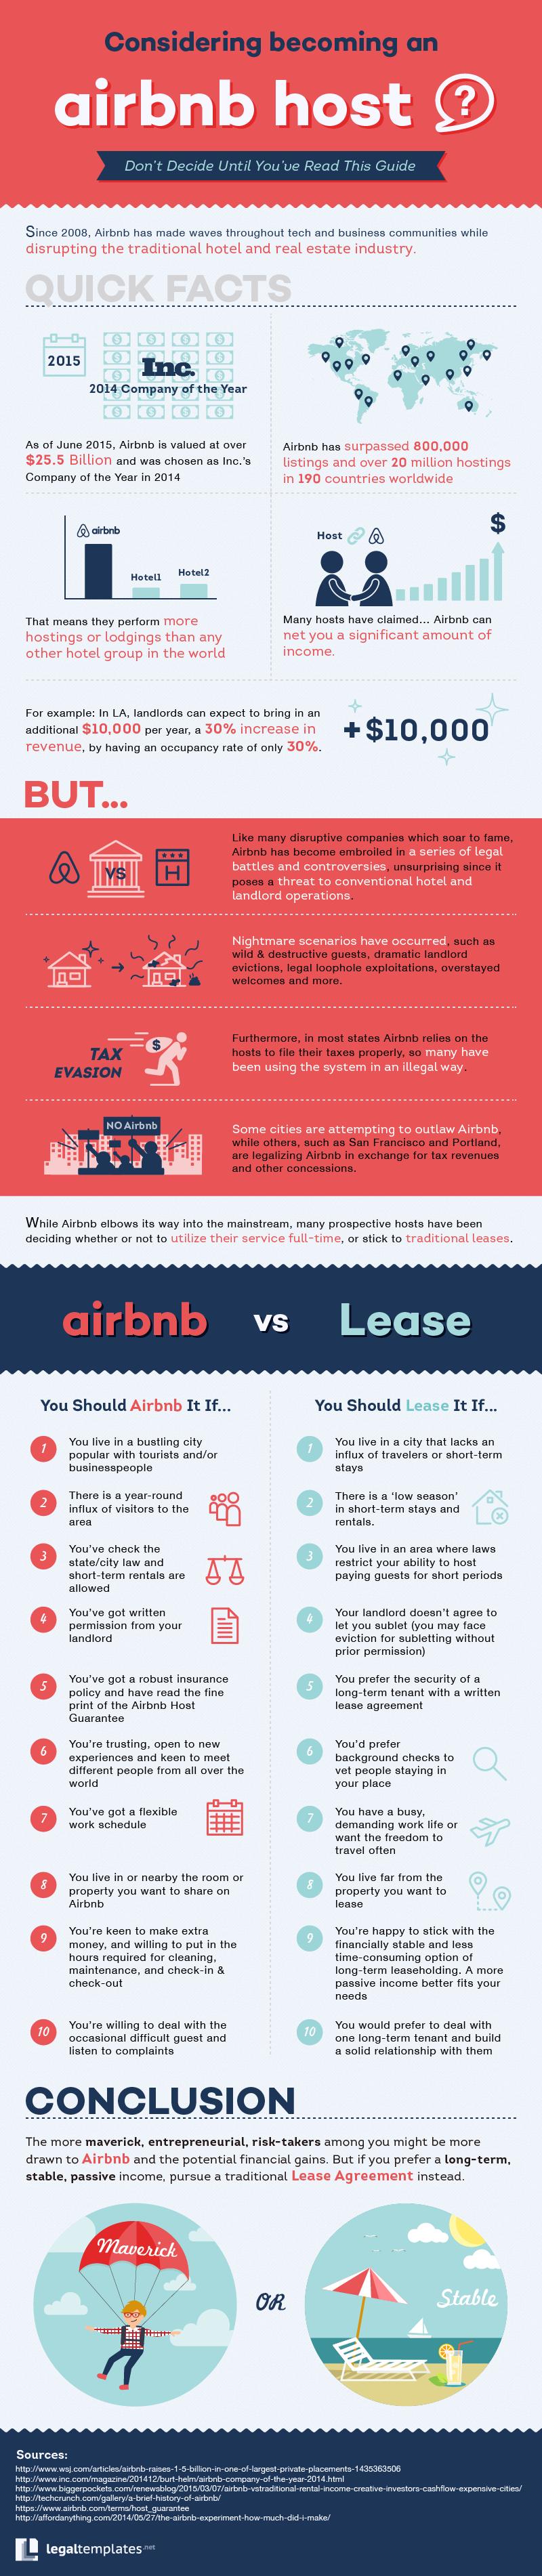 Should you an Airbnb host? Read this infographic